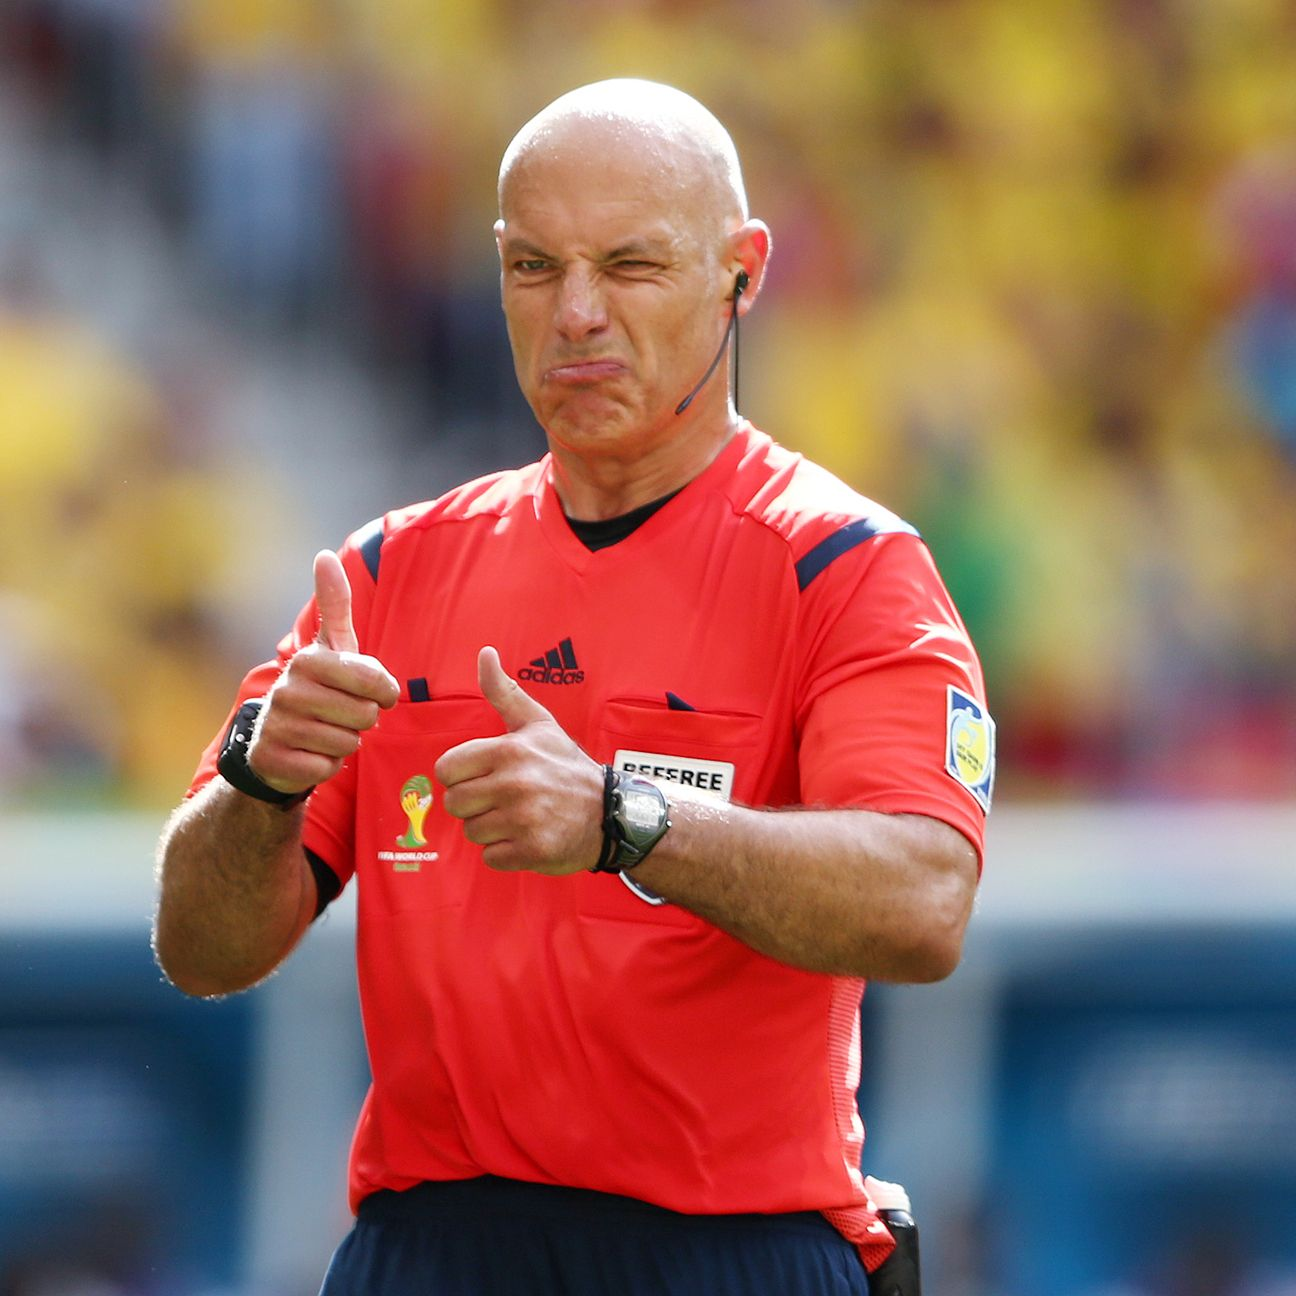 Webb has been mocked his entire career but still refereed with authority, good sense and class.